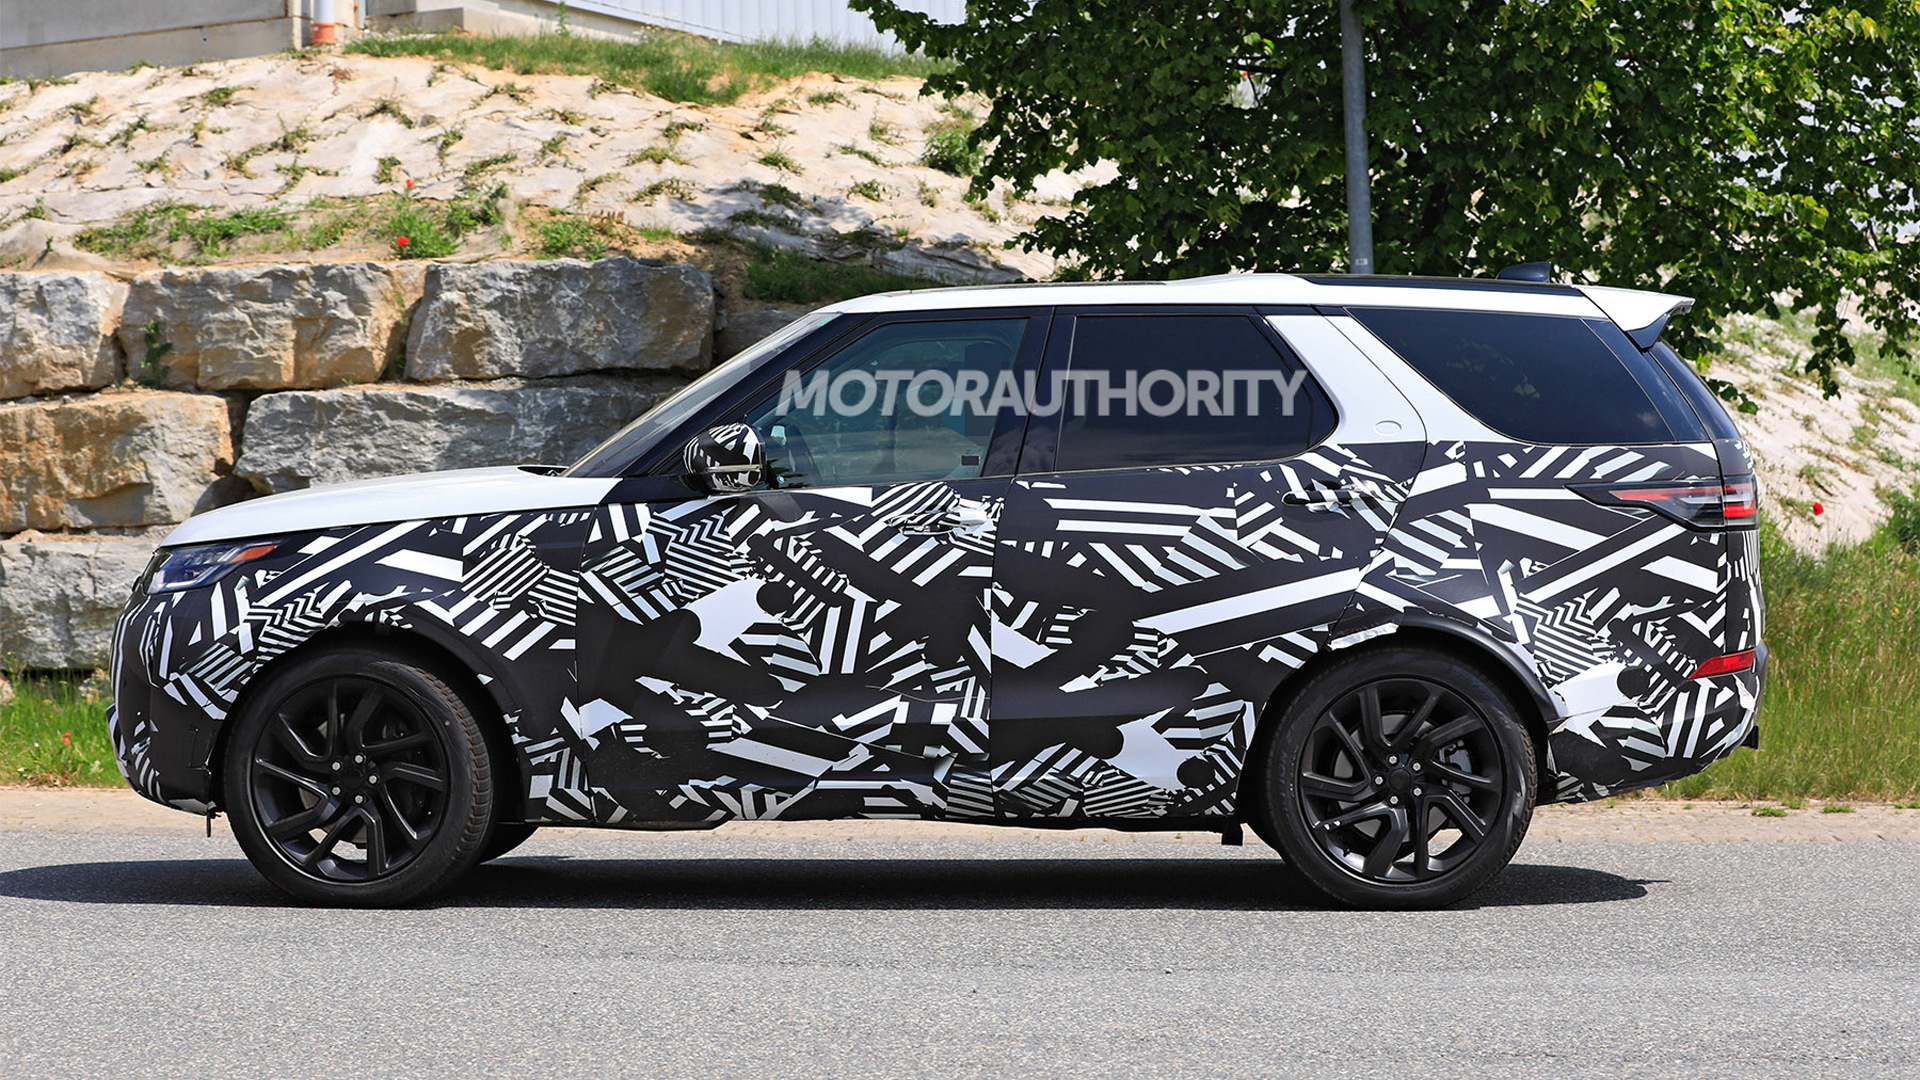 2021 Land Rover Discovery facelift spy shots - Photo credit: S. Baldauf/SB-Medien